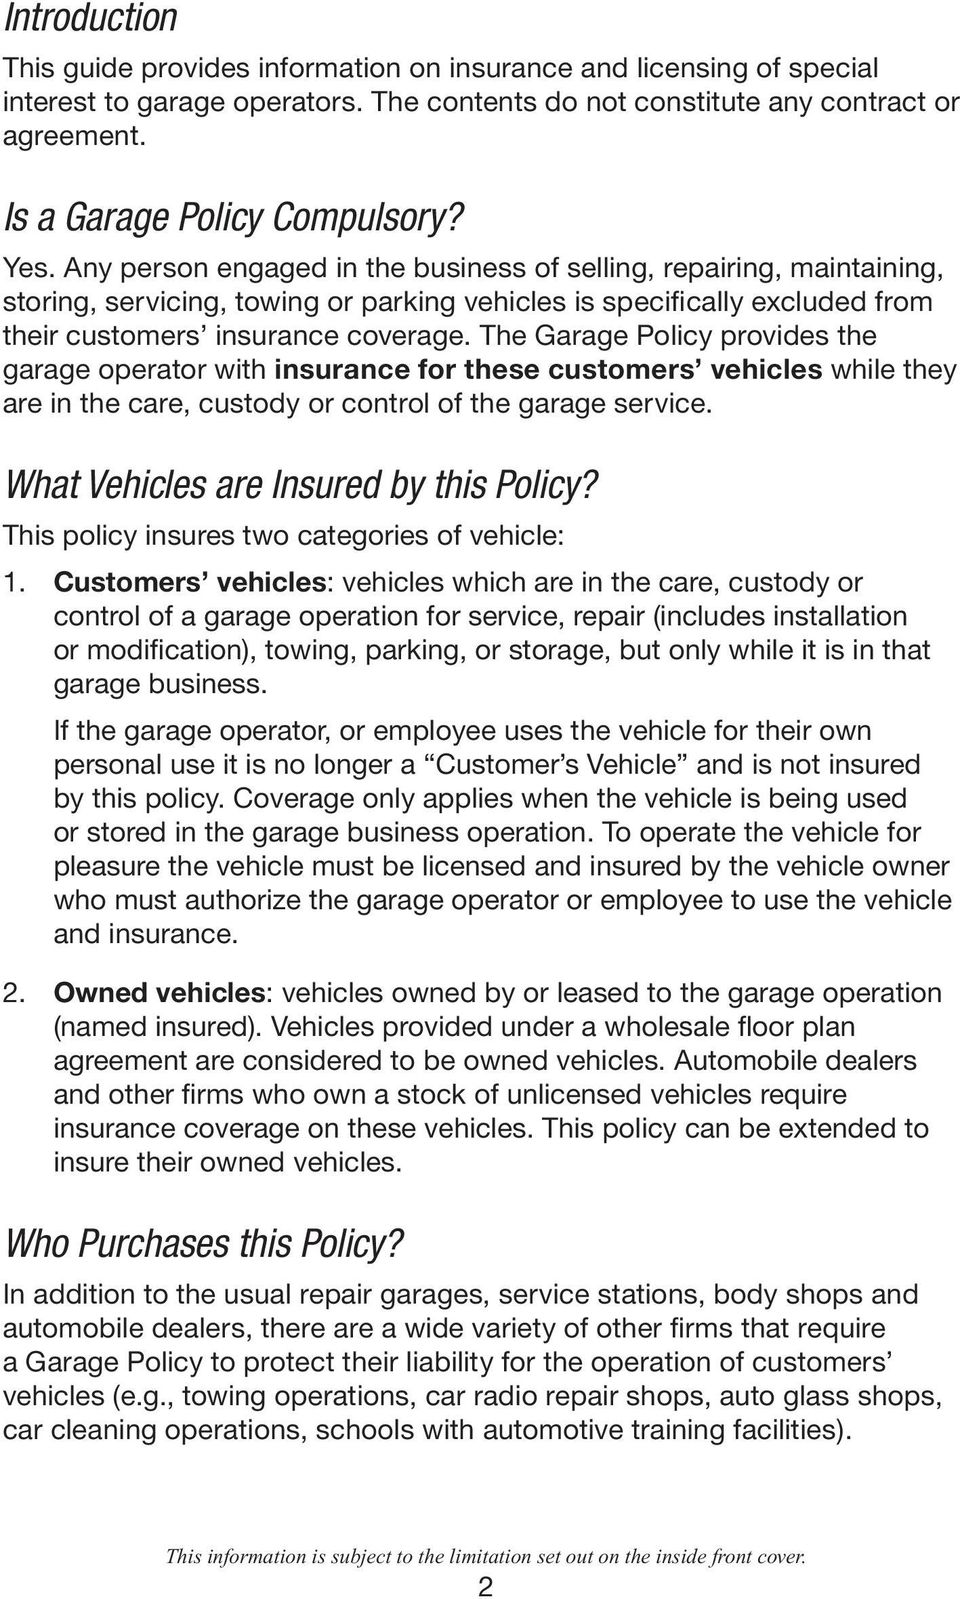 Any person engaged in the business of selling, repairing, maintaining, storing, serv ic ing, towing or parking vehicles is specifi cally excluded from their customers insurance coverage.